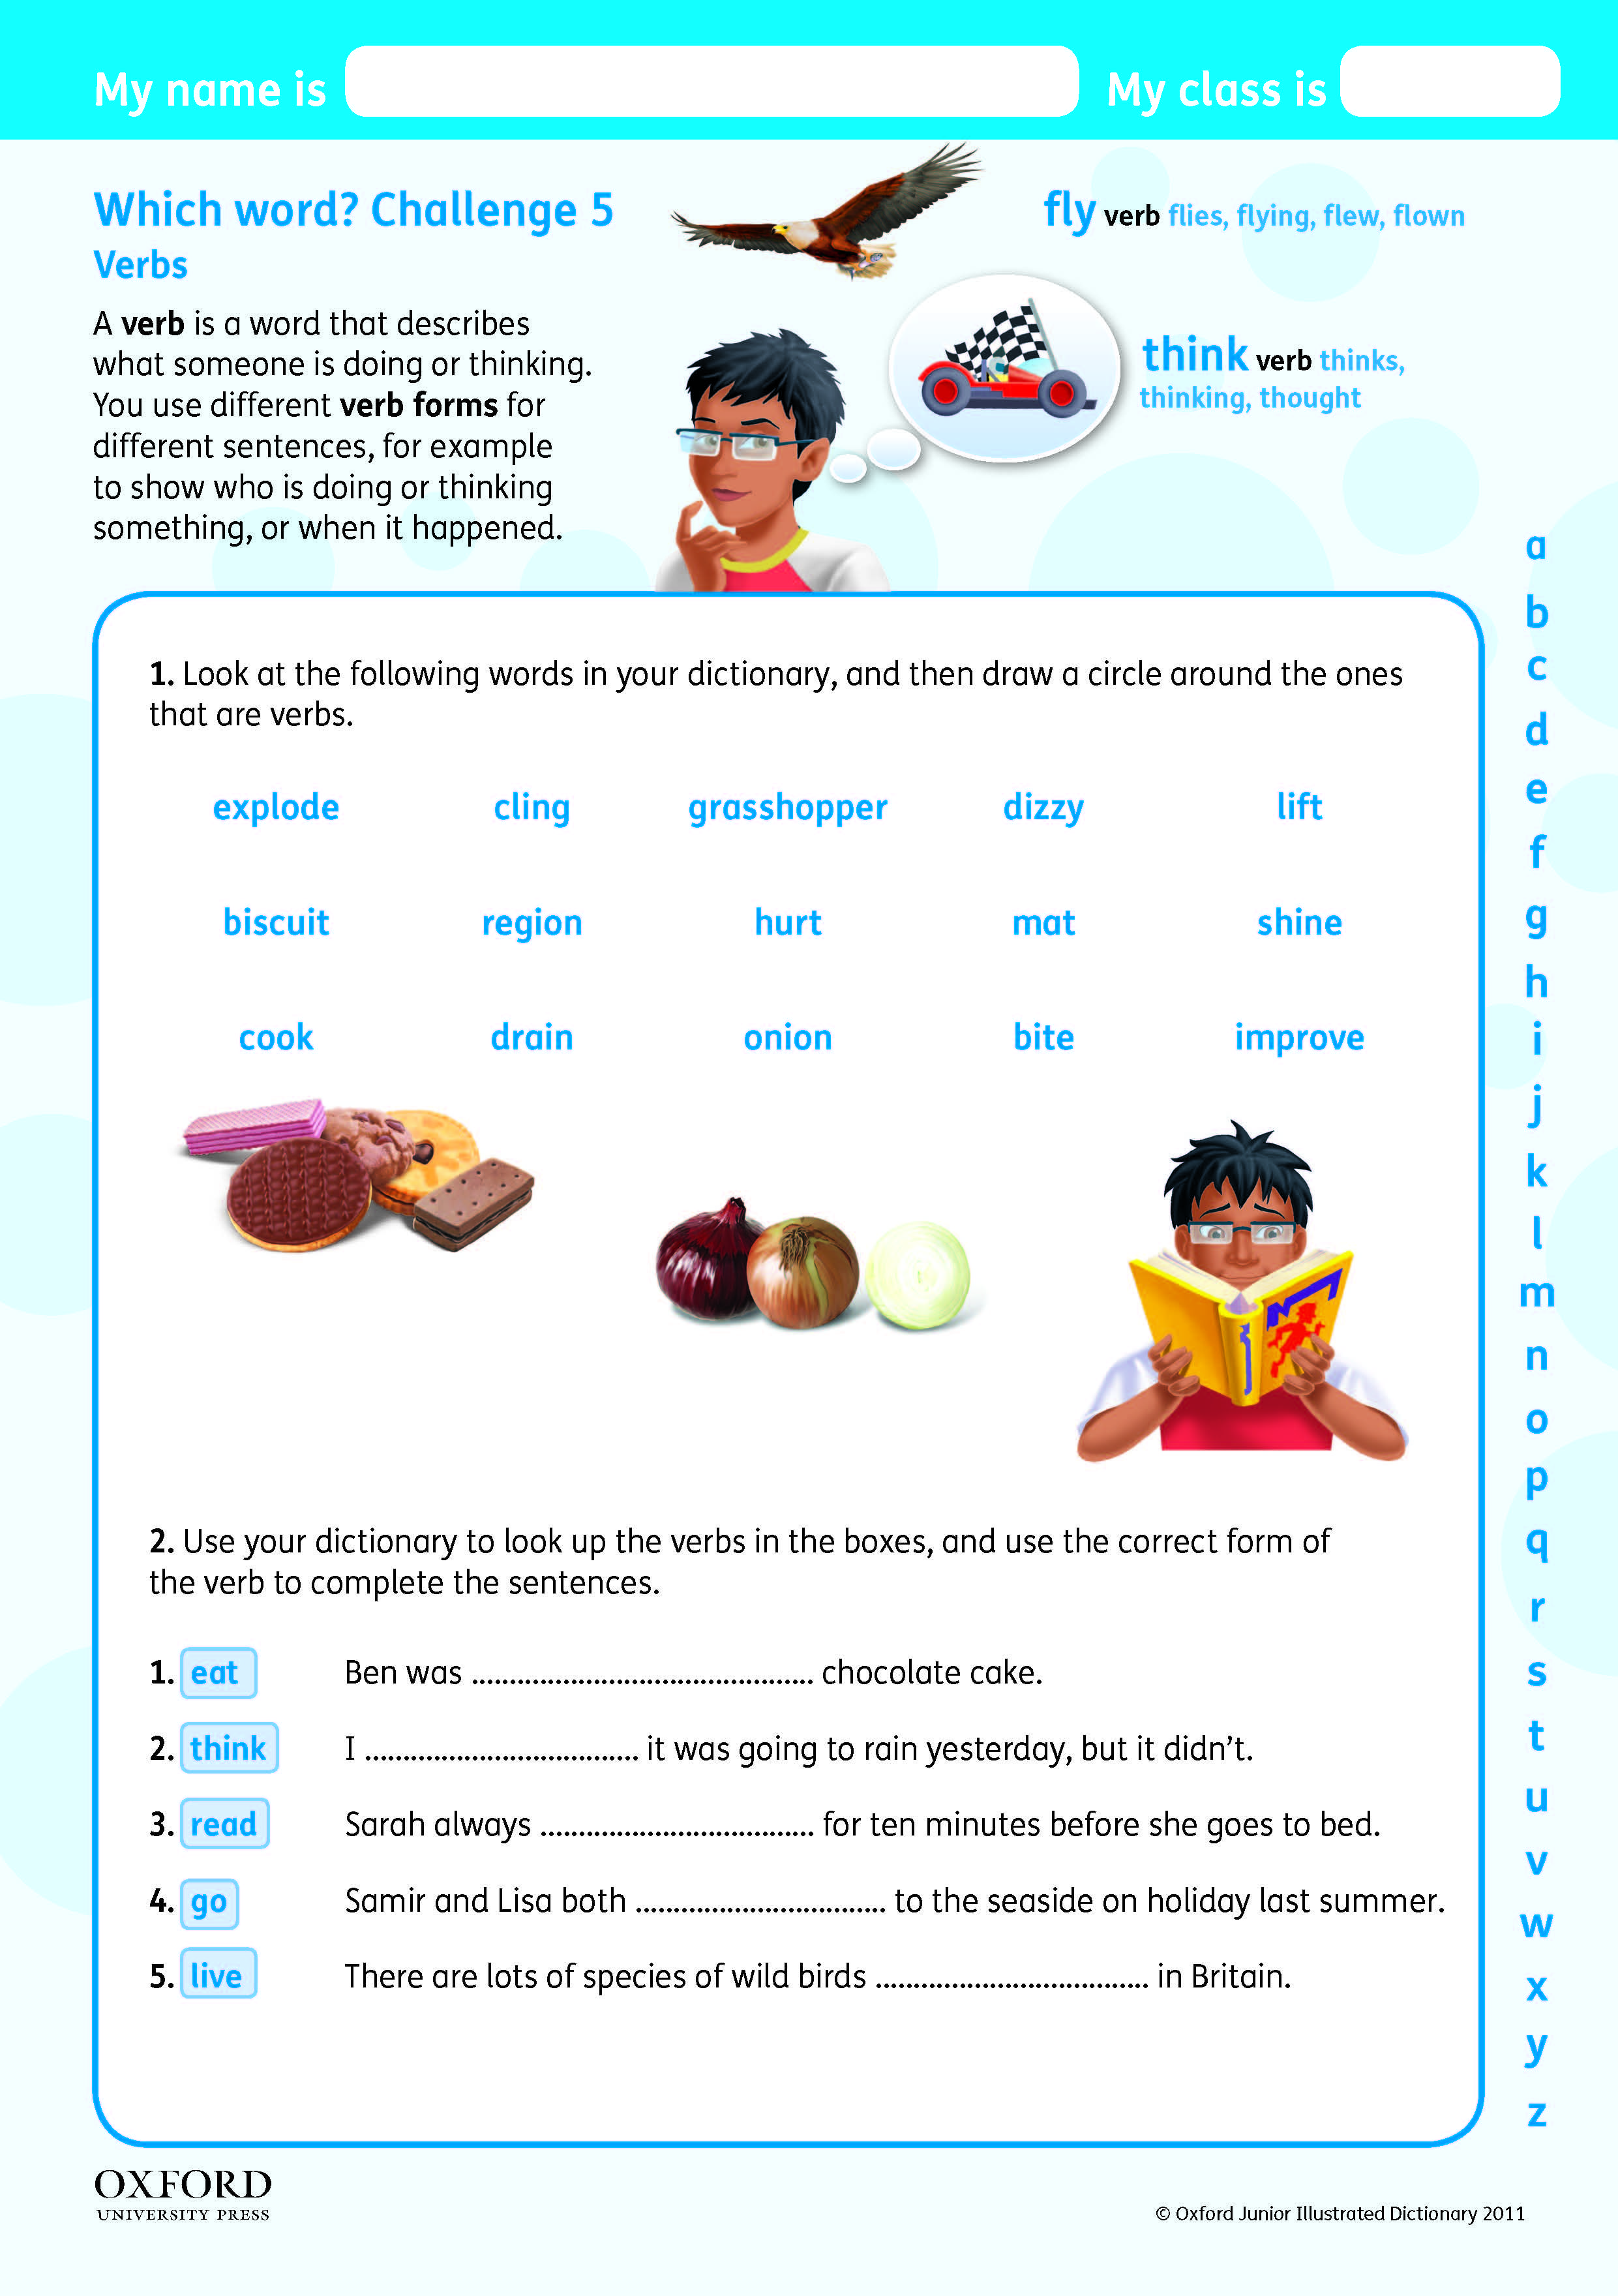 Synonym Worksheets For First Grade Word Download Your Free Oxford Junior Illustrated Dictionary Super  English Worksheets Year 7 Word with Pronoun Worksheets For High School Download Your Free Oxford Junior Illustrated Dictionary Challenge Worksheet  Teach Children About Verbs And Verb Character Traits Worksheet 3rd Grade